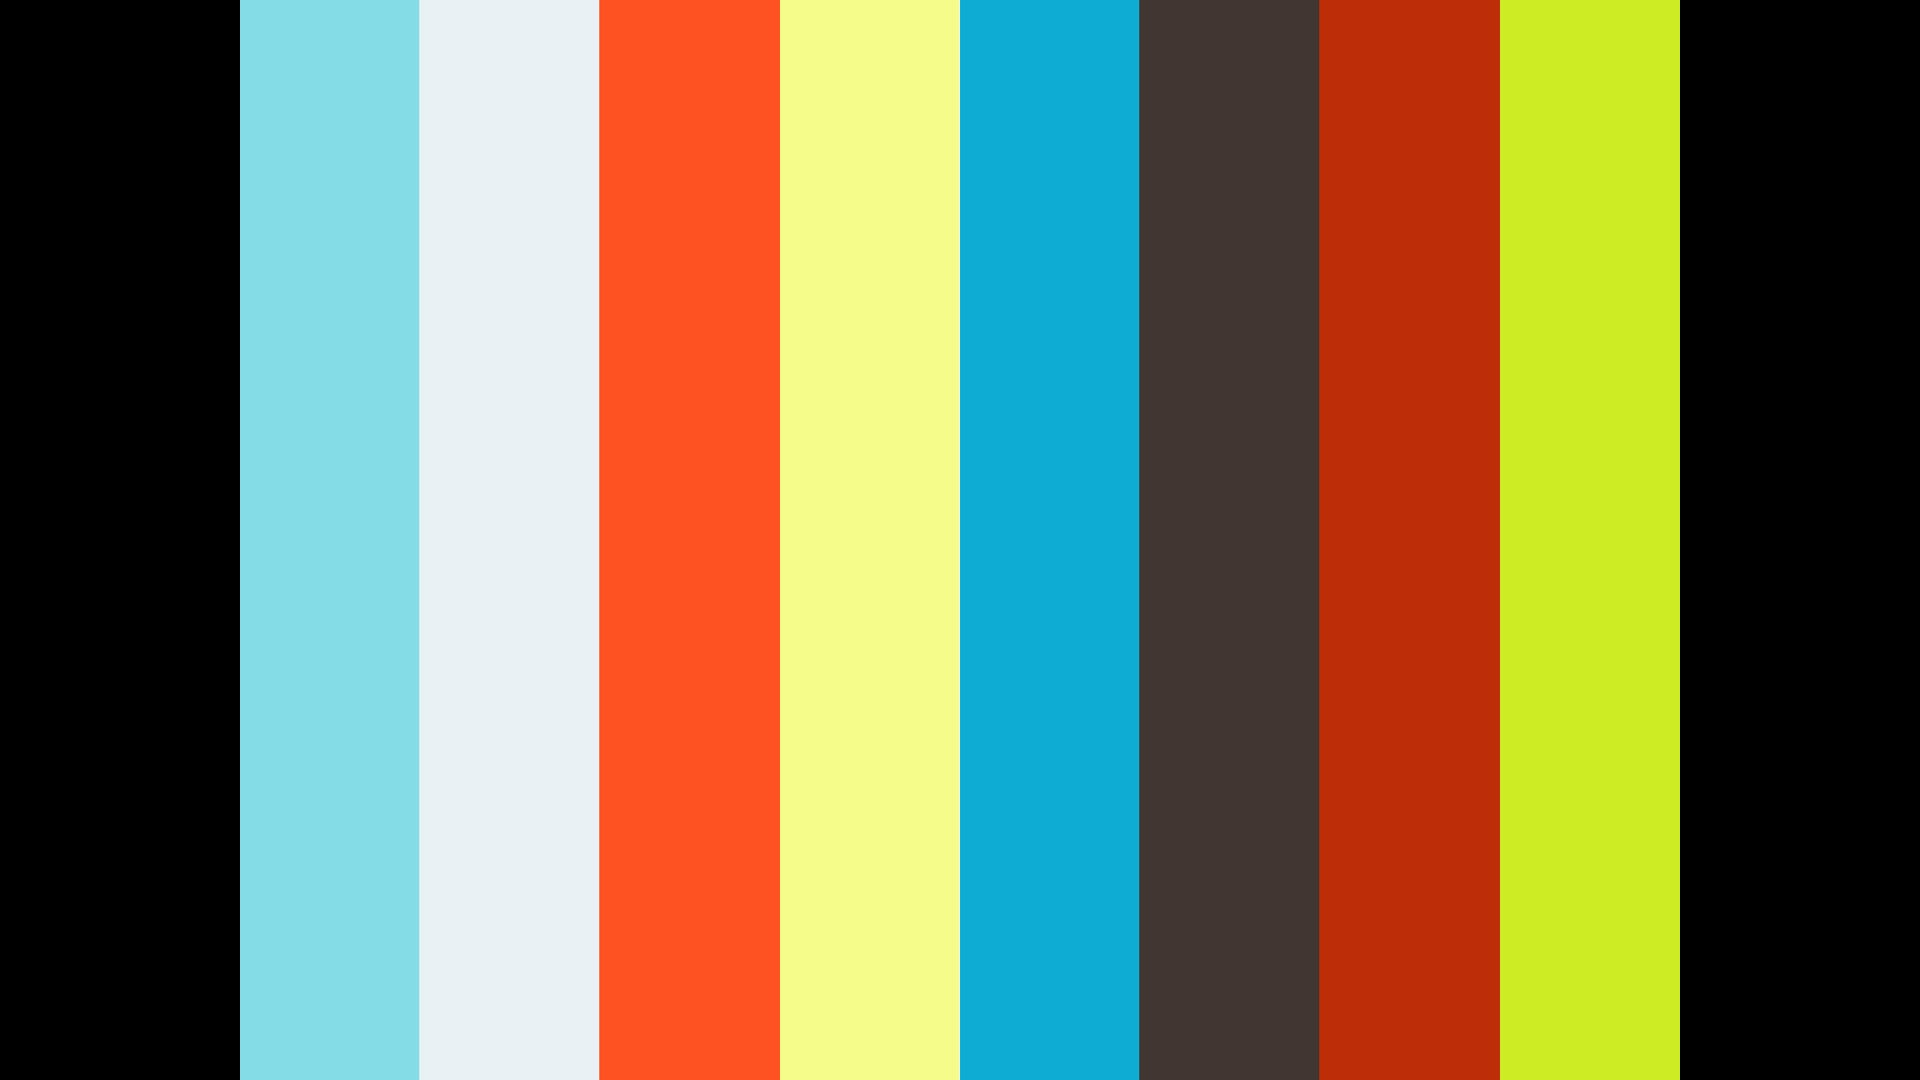 Skate na Água - Full Movie (Subtitled)